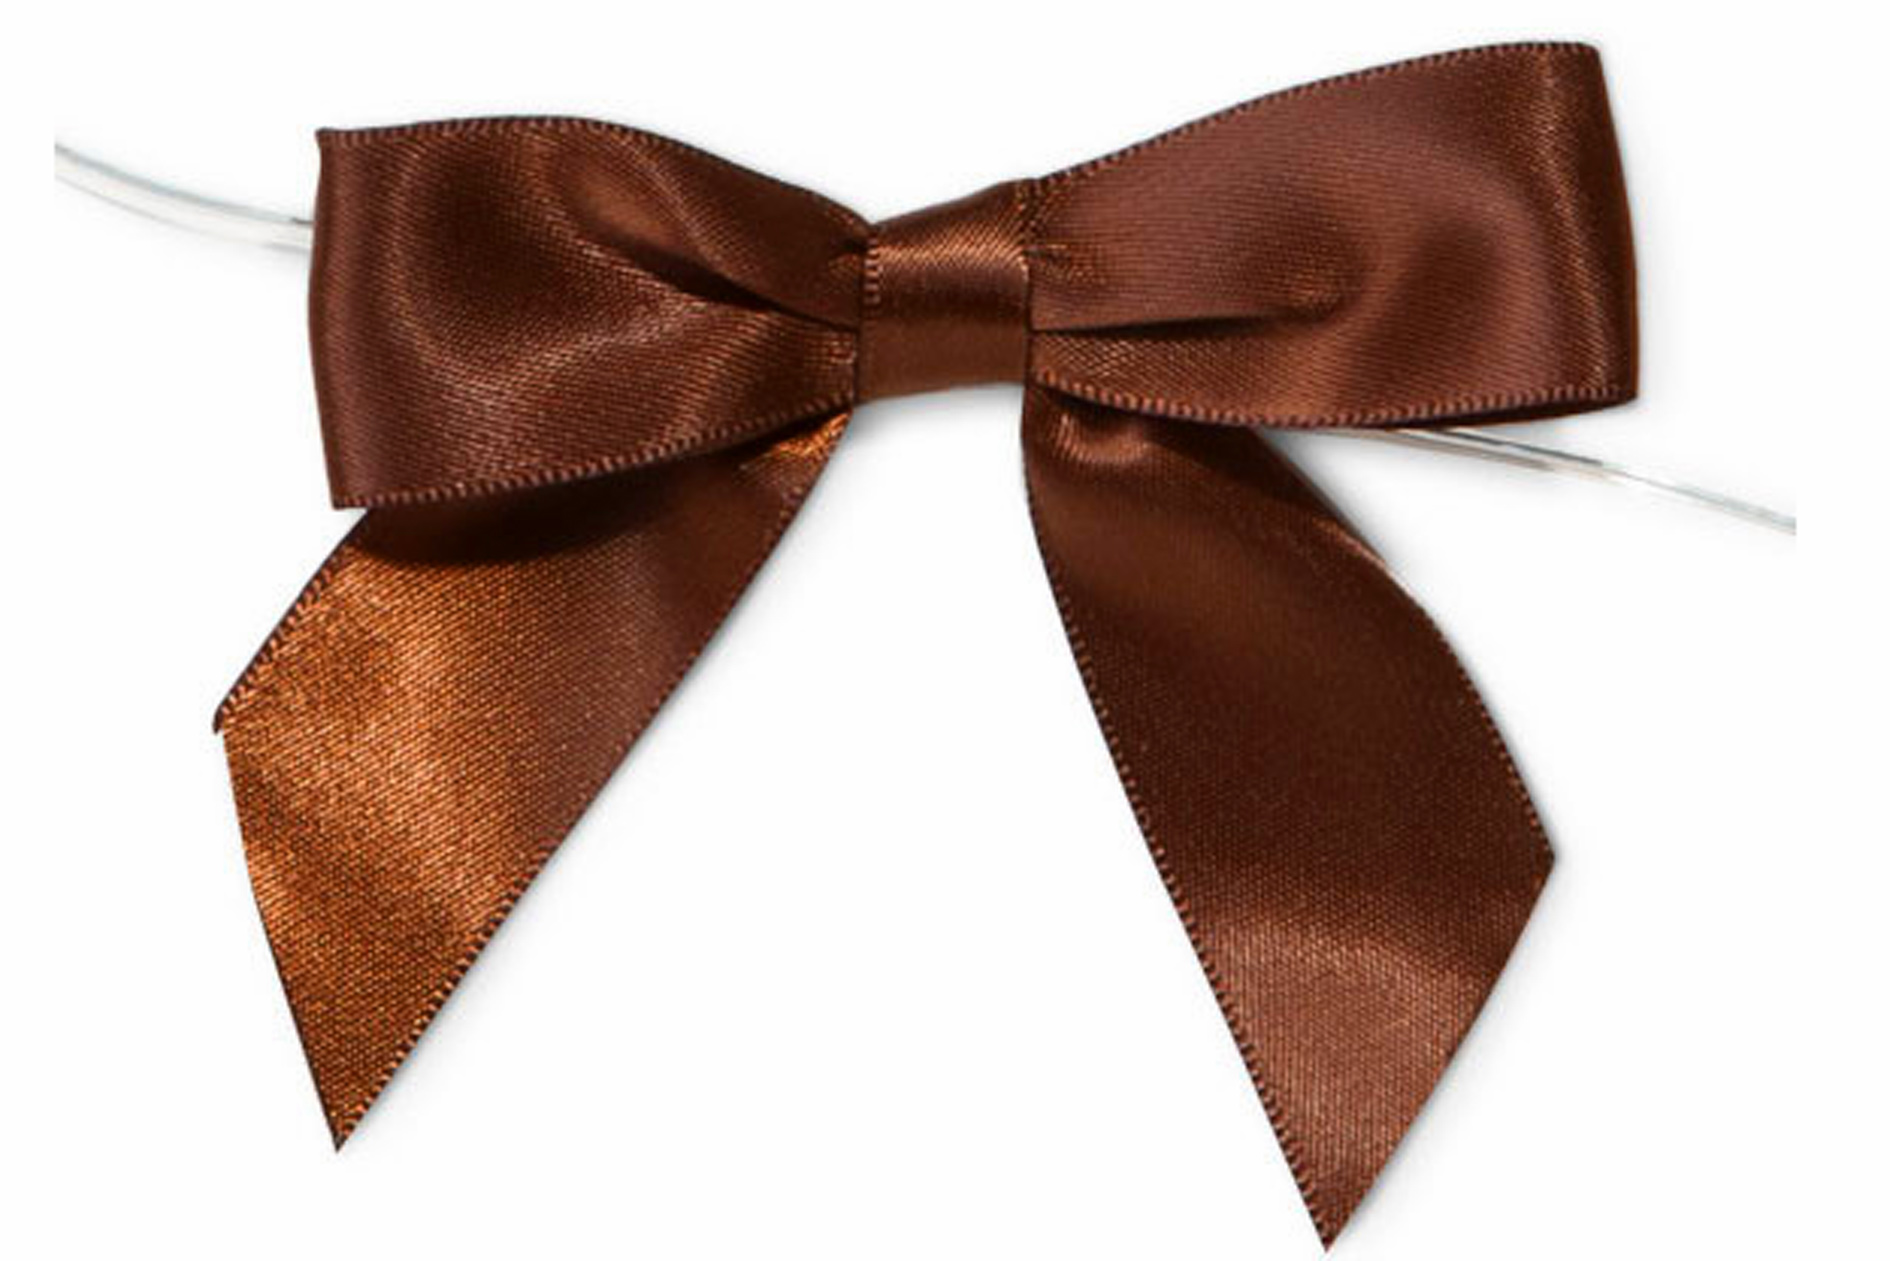 MINI SATIN BOWS with Twist Ties - 20mm - (pk 10) CHOCOLATE BROWN